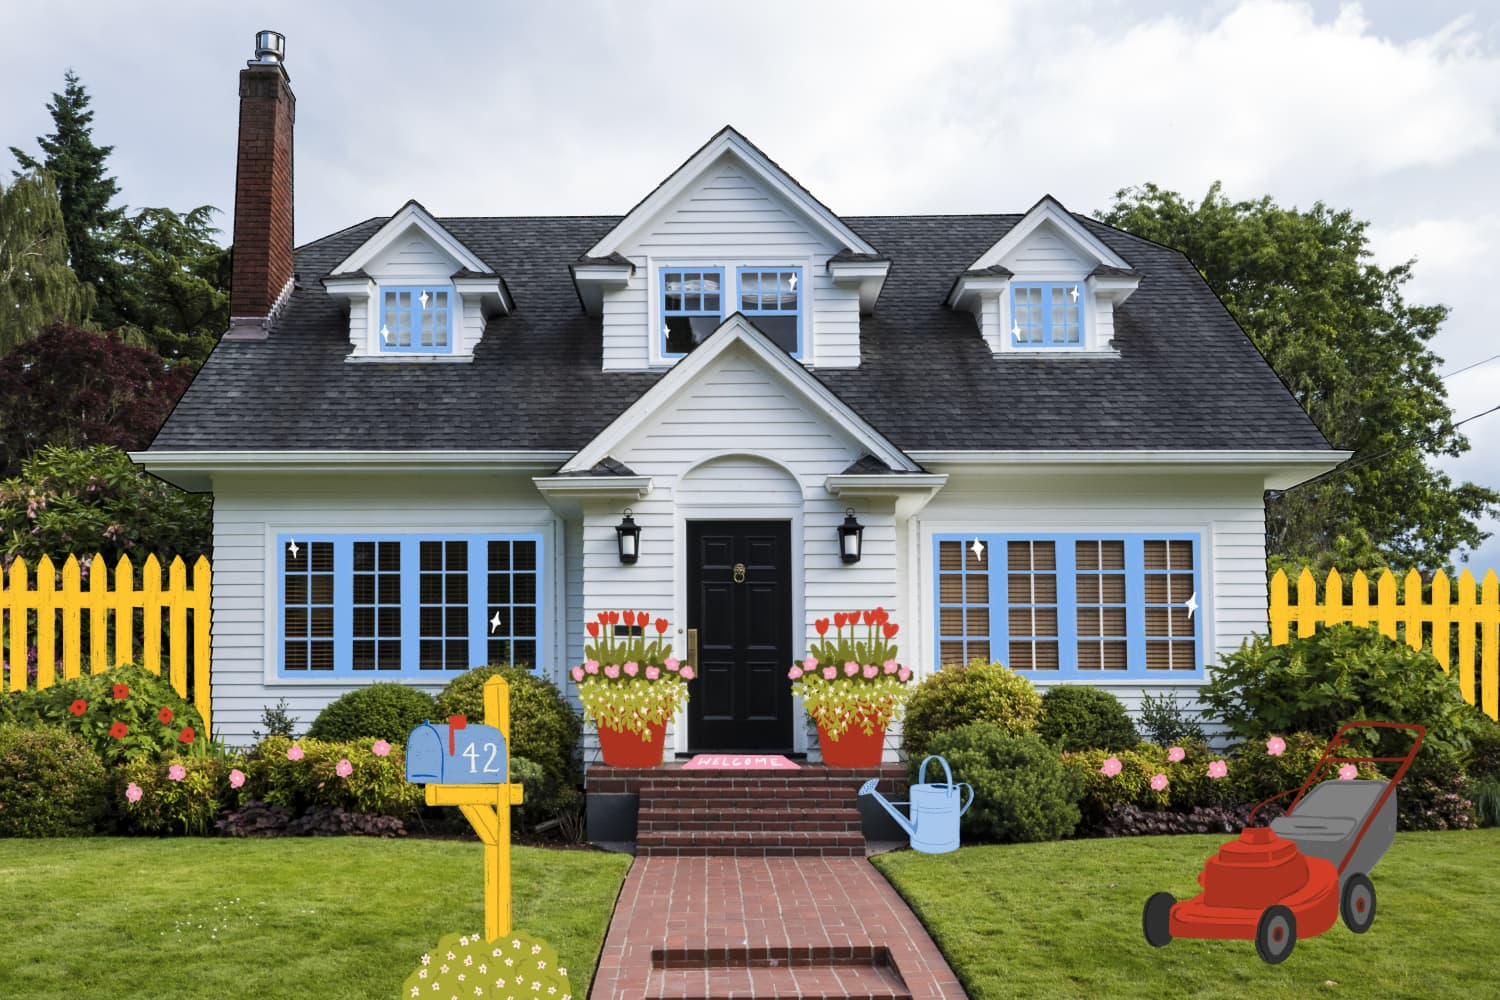 22 Projects to Up Your Curb Appeal While You're Stuck at Home This Spring